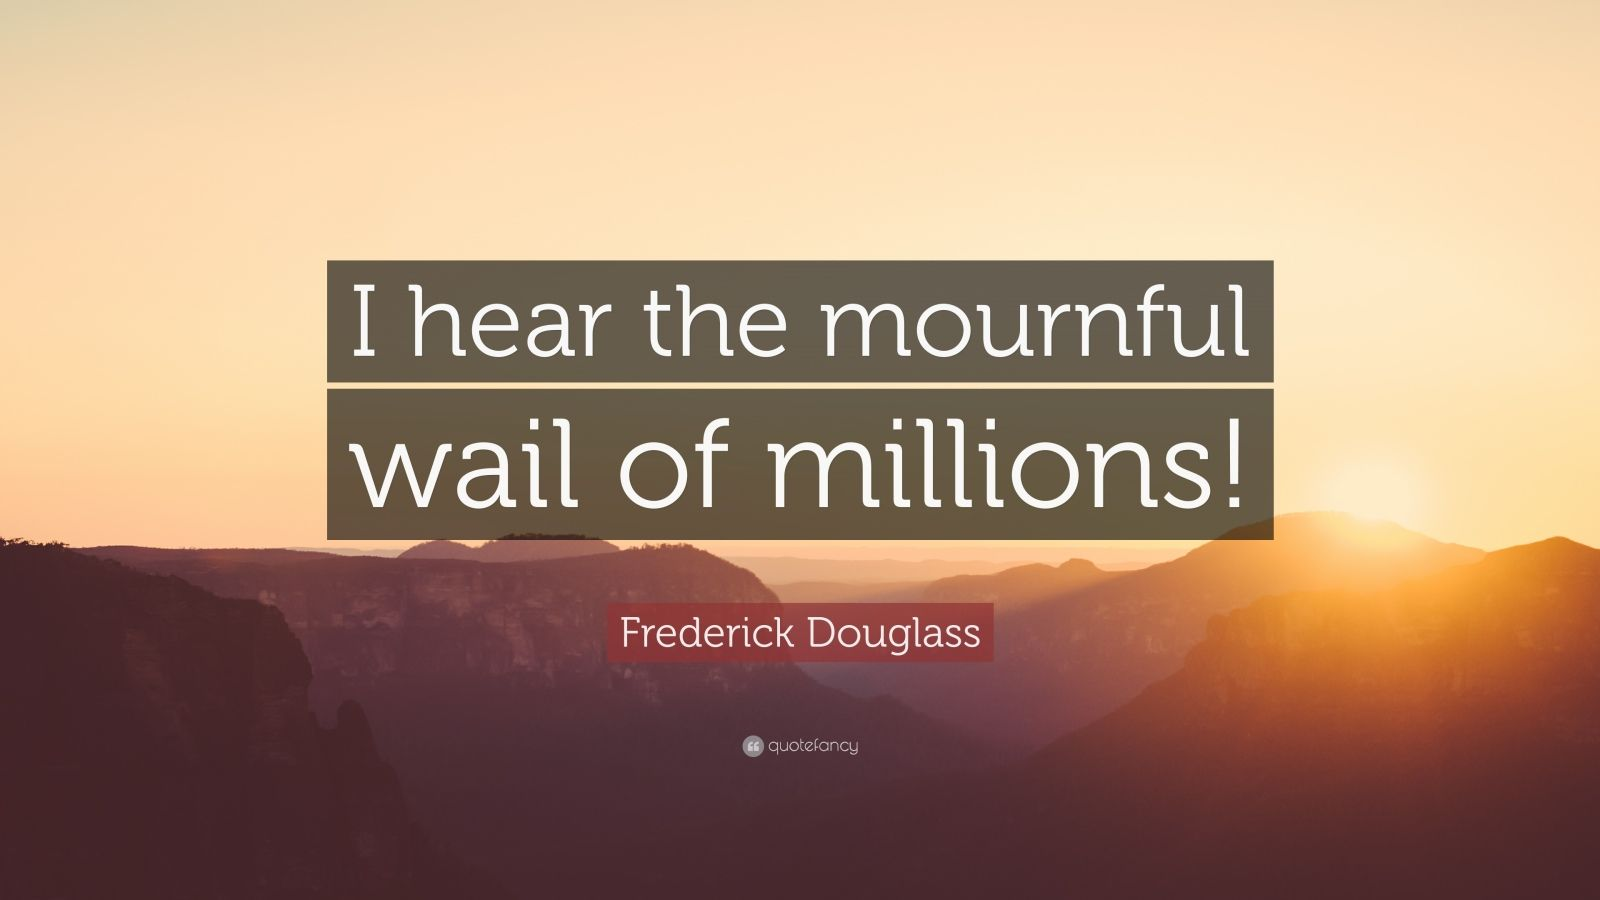 """Frederick Douglass Quote: """"I hear the mournful wail of millions!"""""""